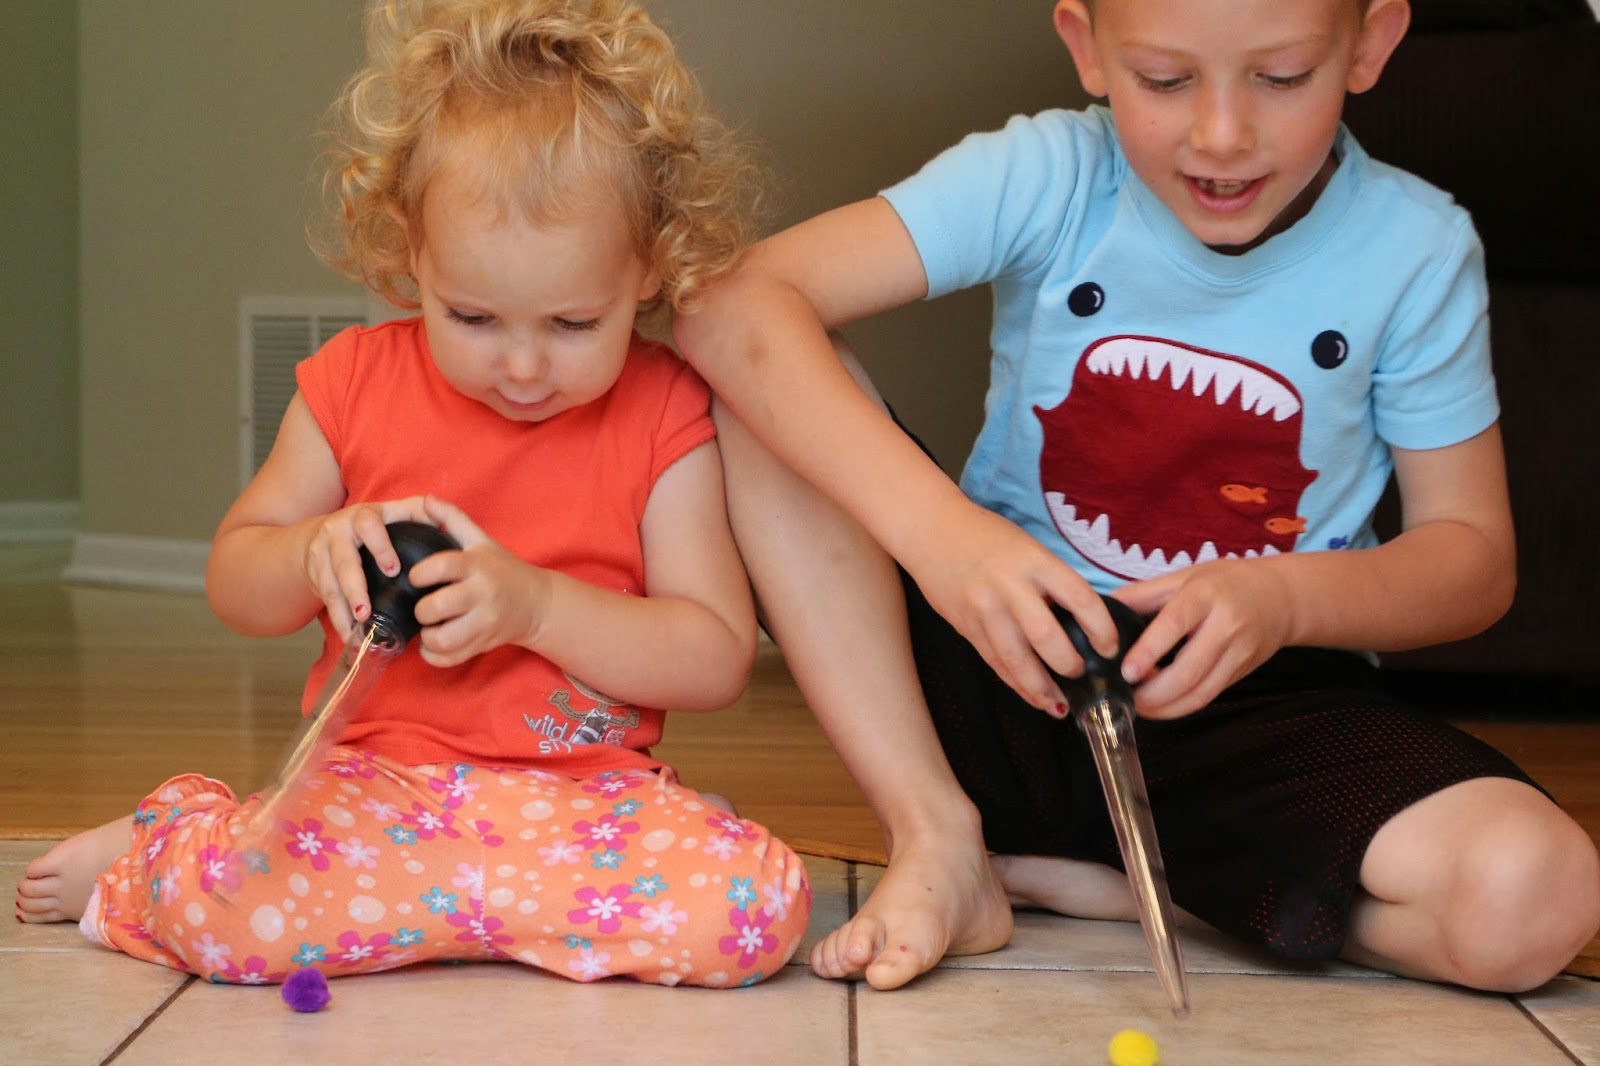 Try these hand & finger strengthening for toddlers, preschoolers, & young kids to improve fine motor skills, grip strength, & coordination